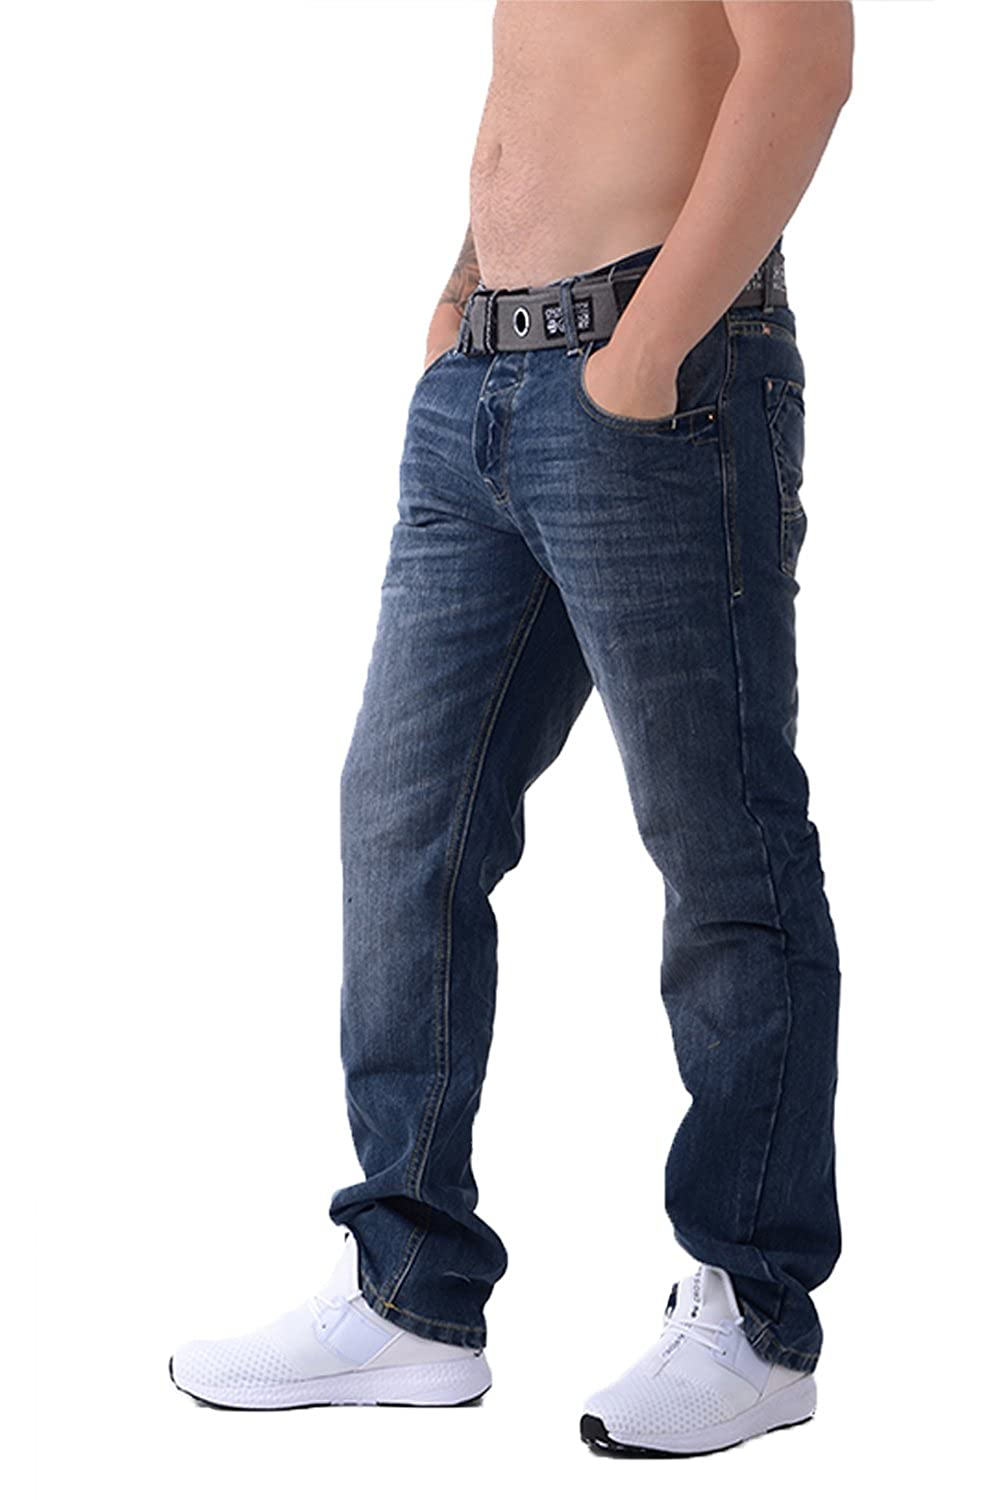 Hombres Crosshatch Jeans Gamitto Lavado Medio 48 NORMAL brRsQ1l